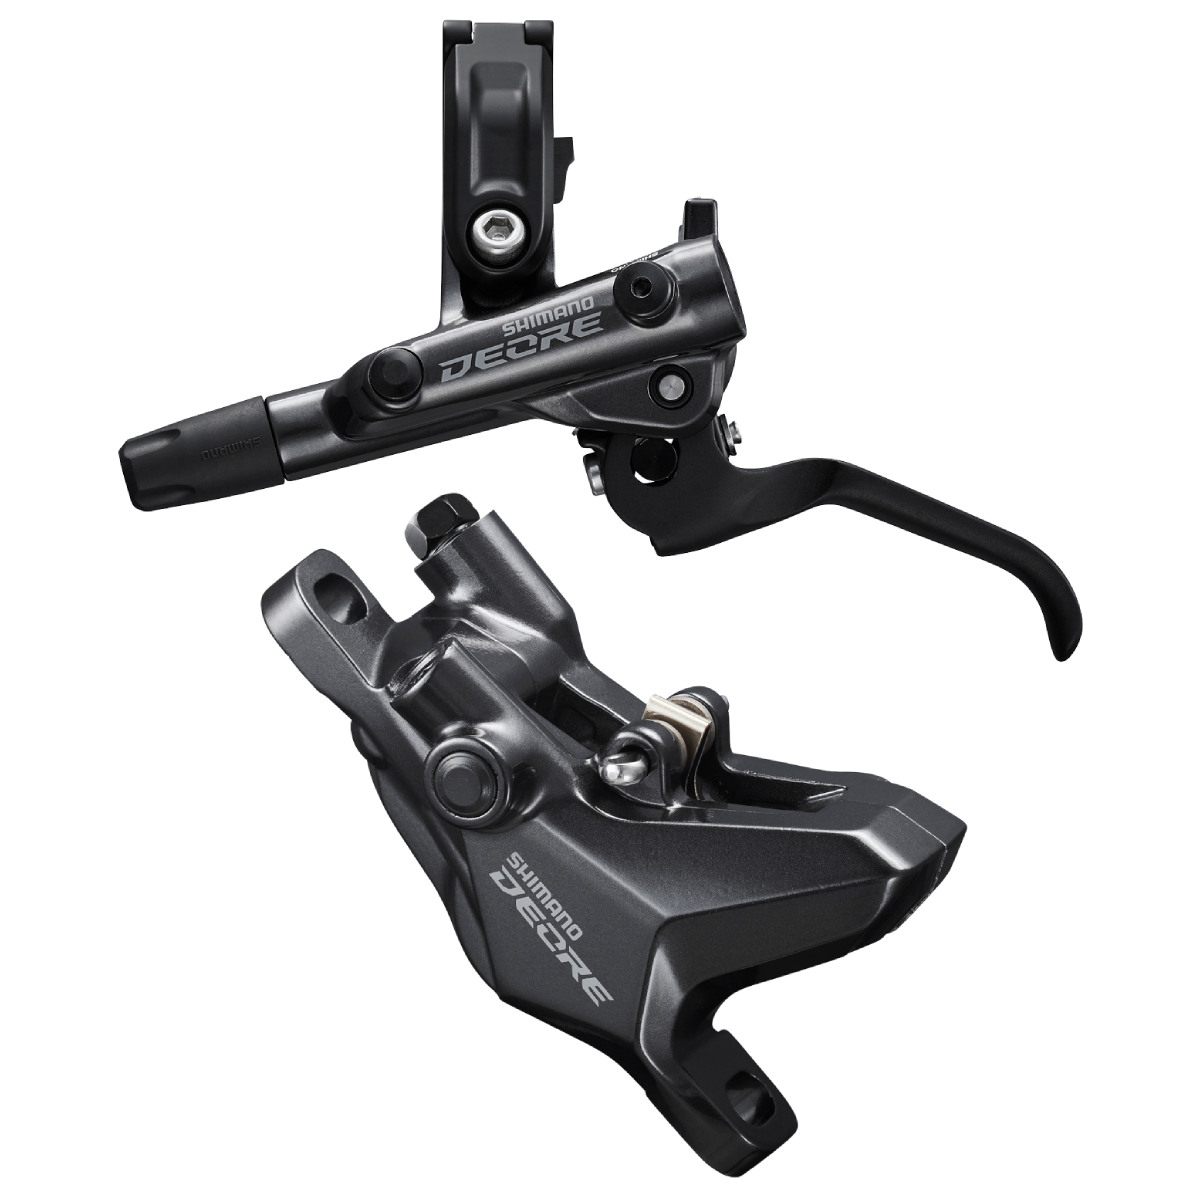 FREIN A DISQUE ARRIERE SHIMANO DEORE BL-M6100 / BR-M6100